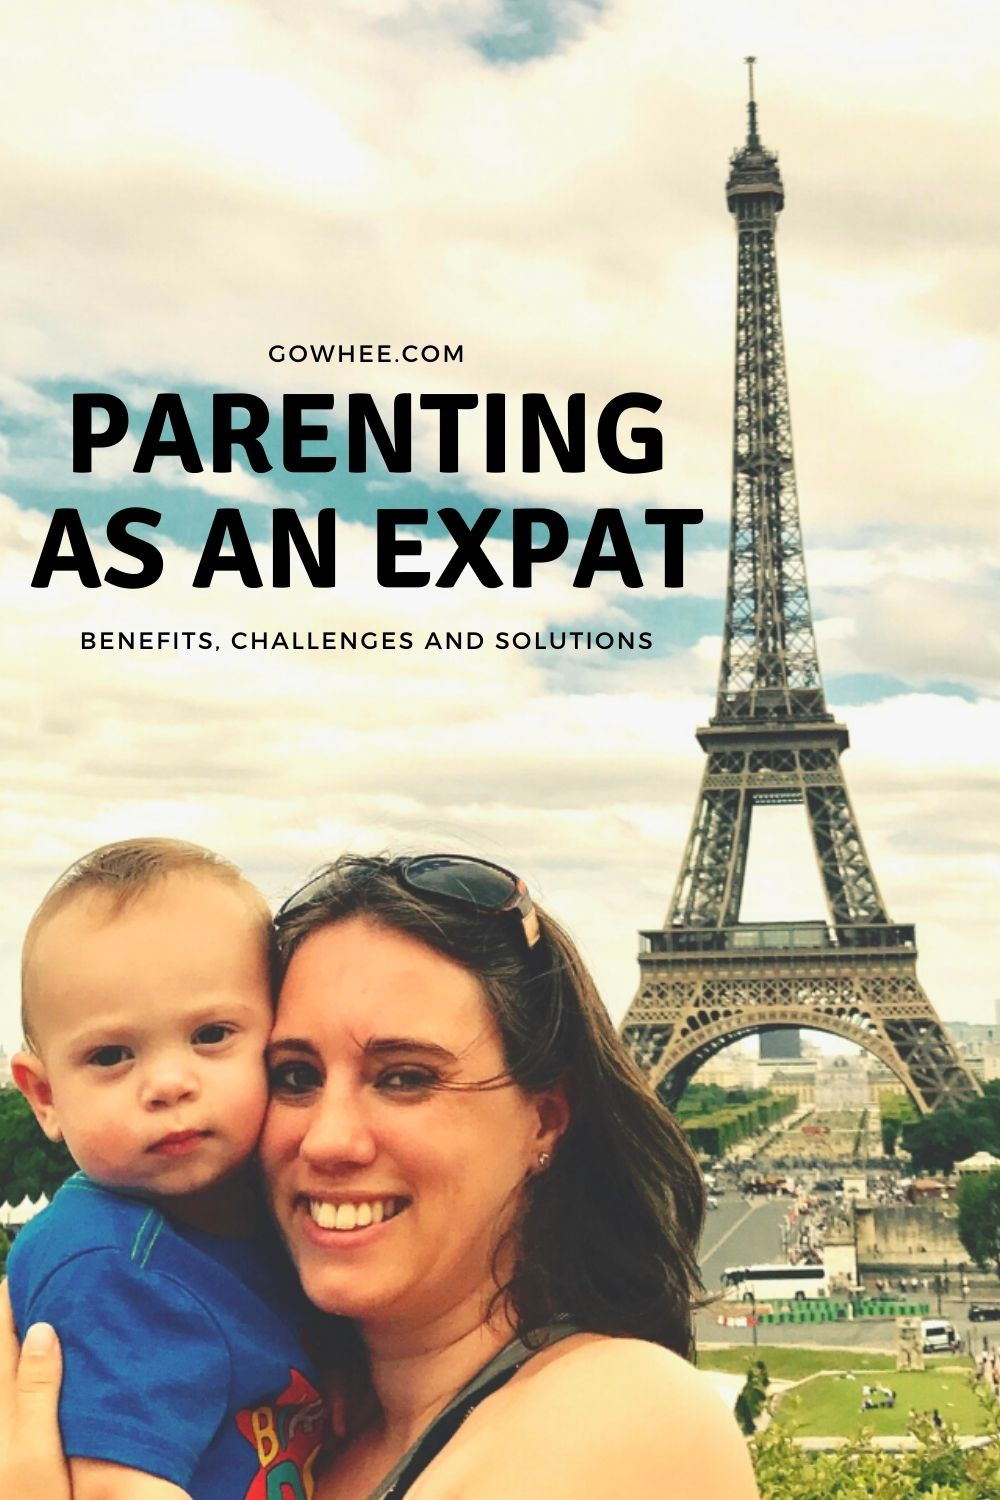 Mother holding her baby boy smilling. They are standing in front of the eiffel tower. The title on the picture says: Parenting as an expat, benefits, challenges and solutions.